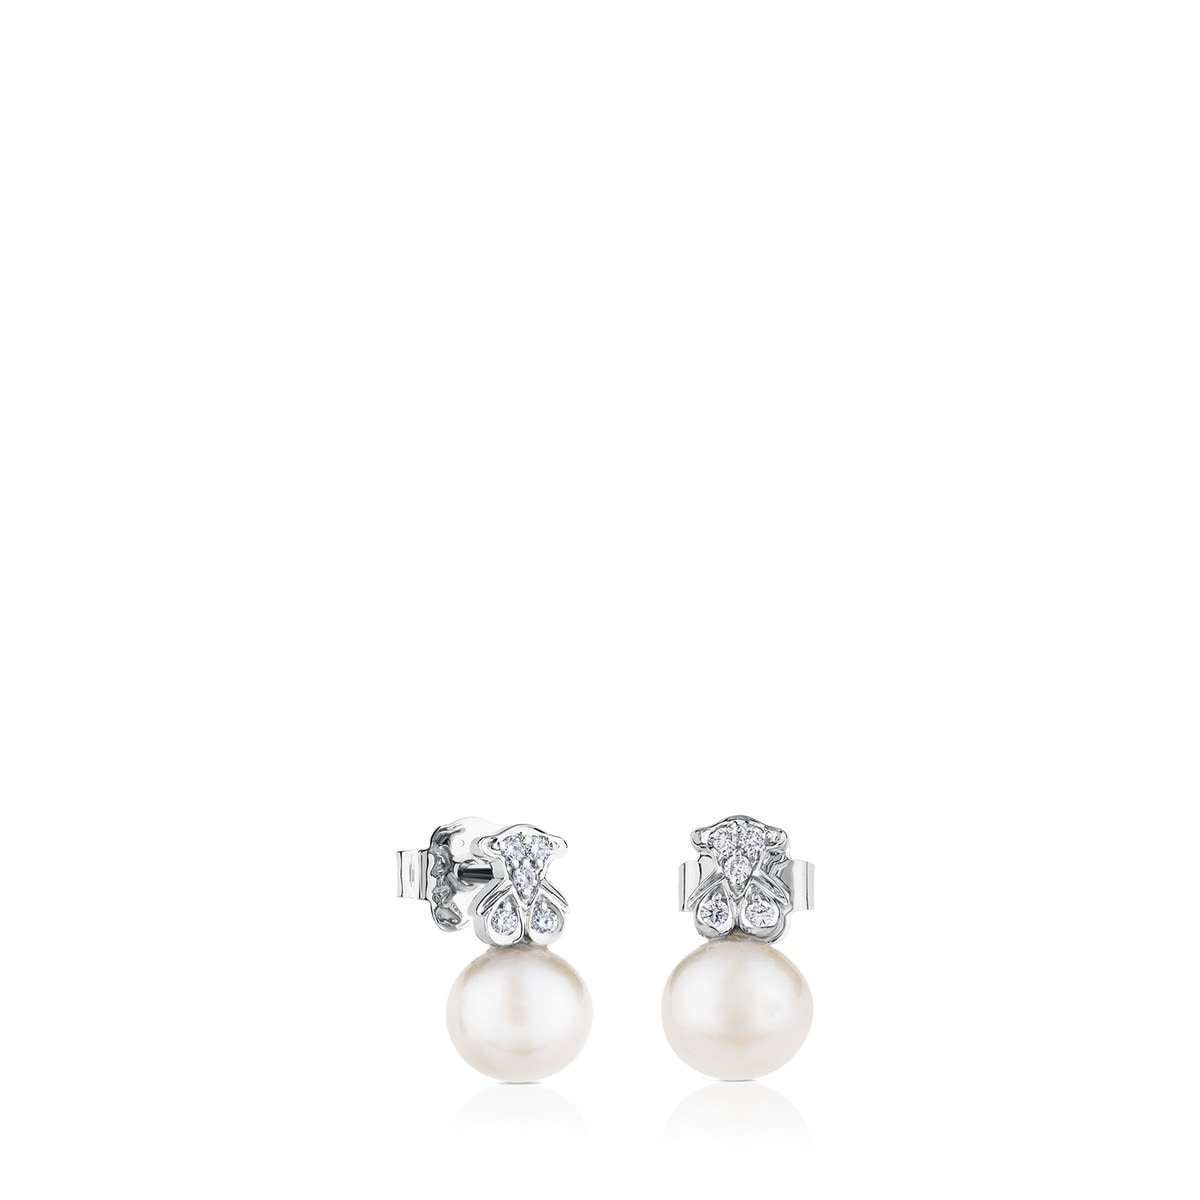 White Gold Puppies Earrings